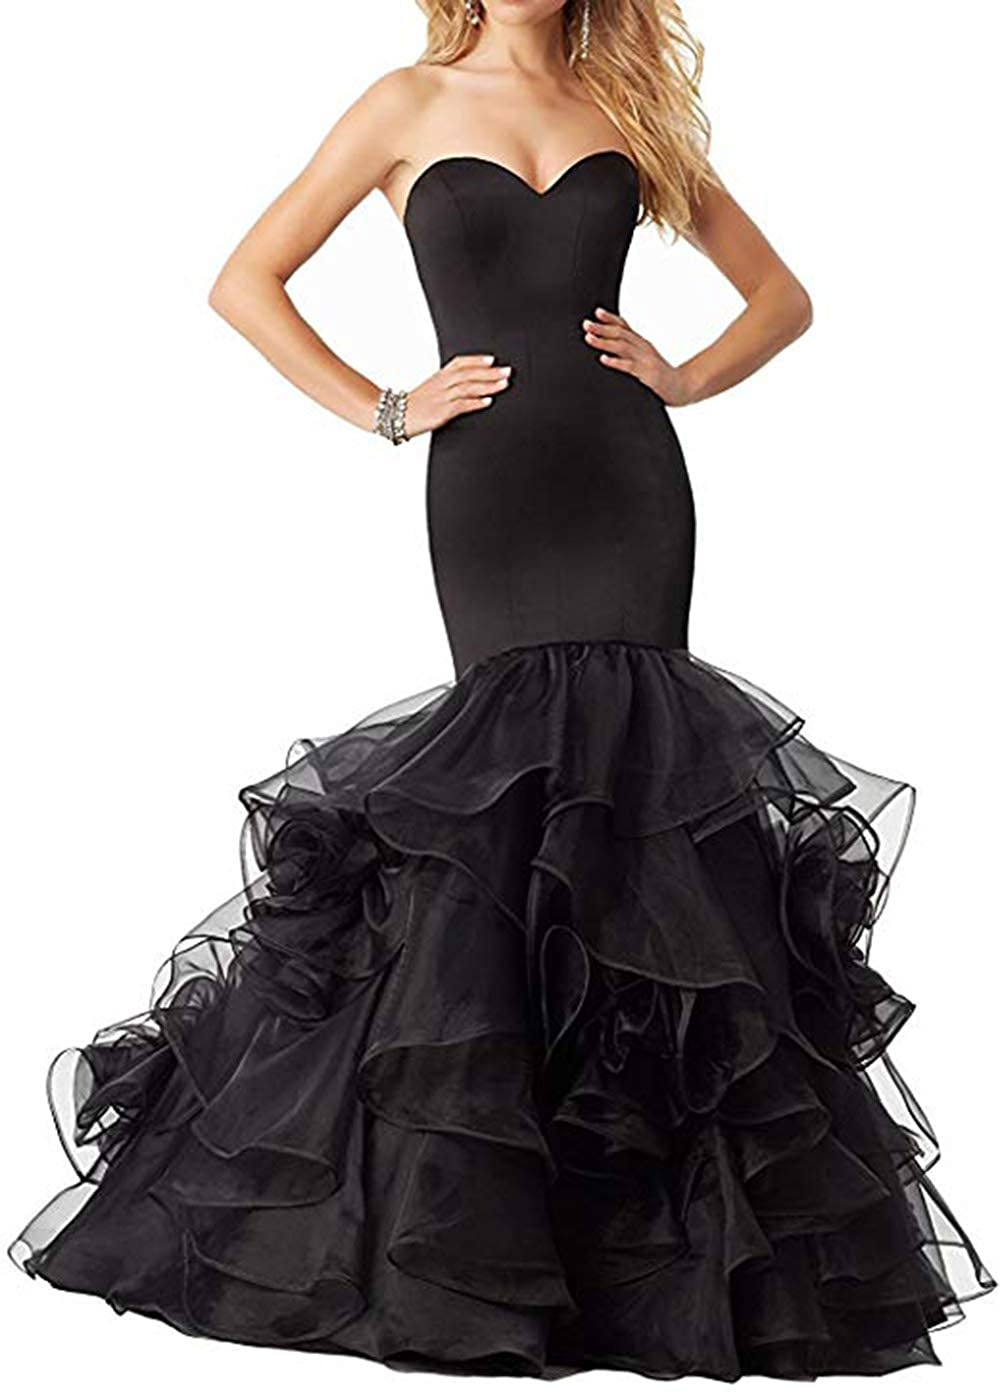 Black Women's Sweetheart Mermaid Prom Dresses Long Strapless Ruffle Organza Formal Evening Ball Gowns 2019